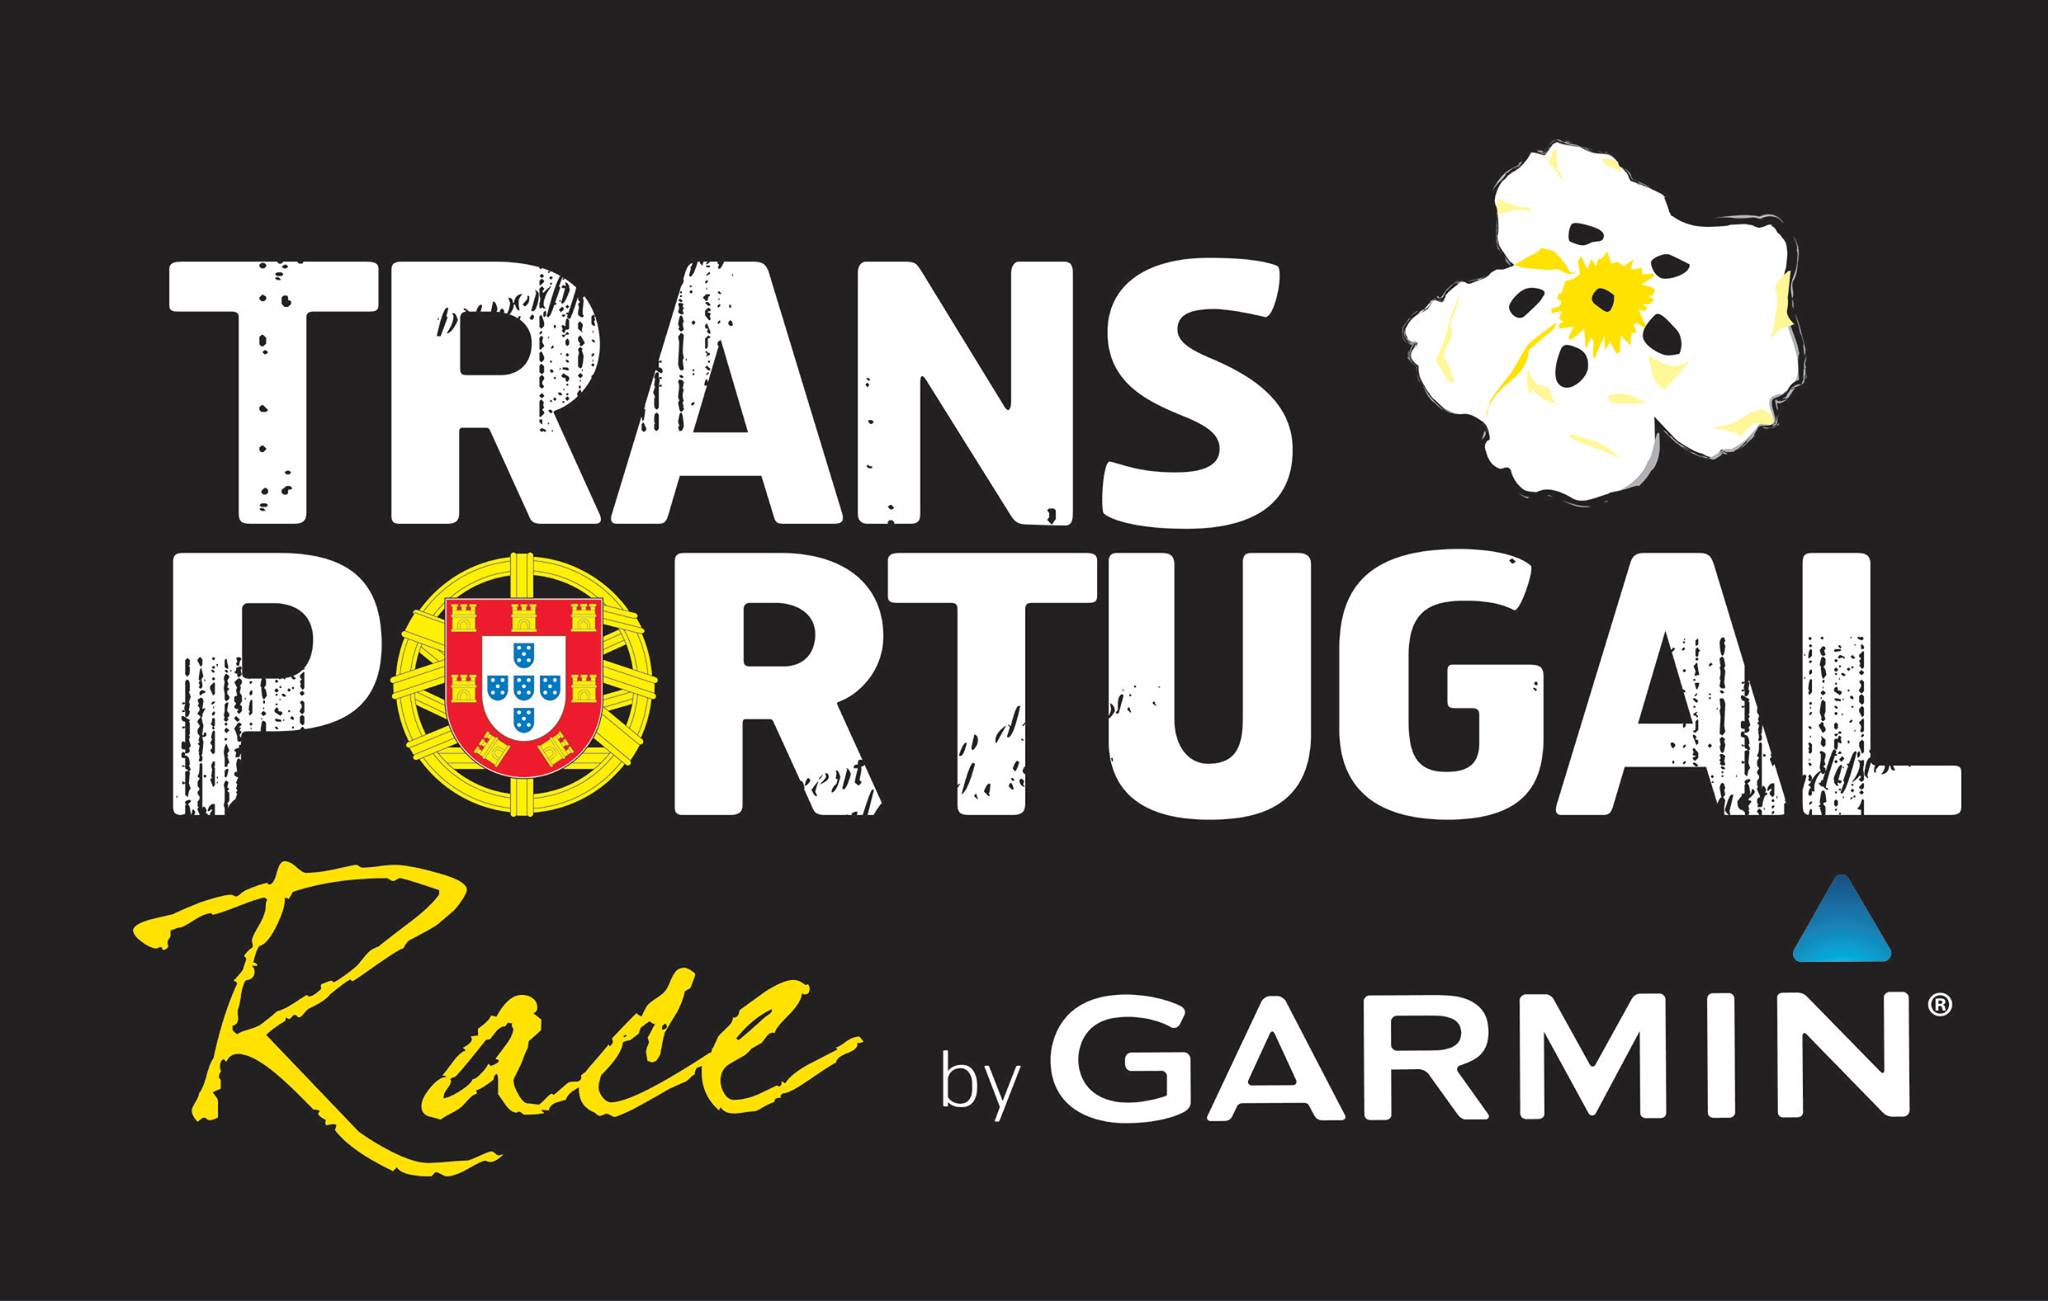 TransPortugalRace 2015 by Garmin